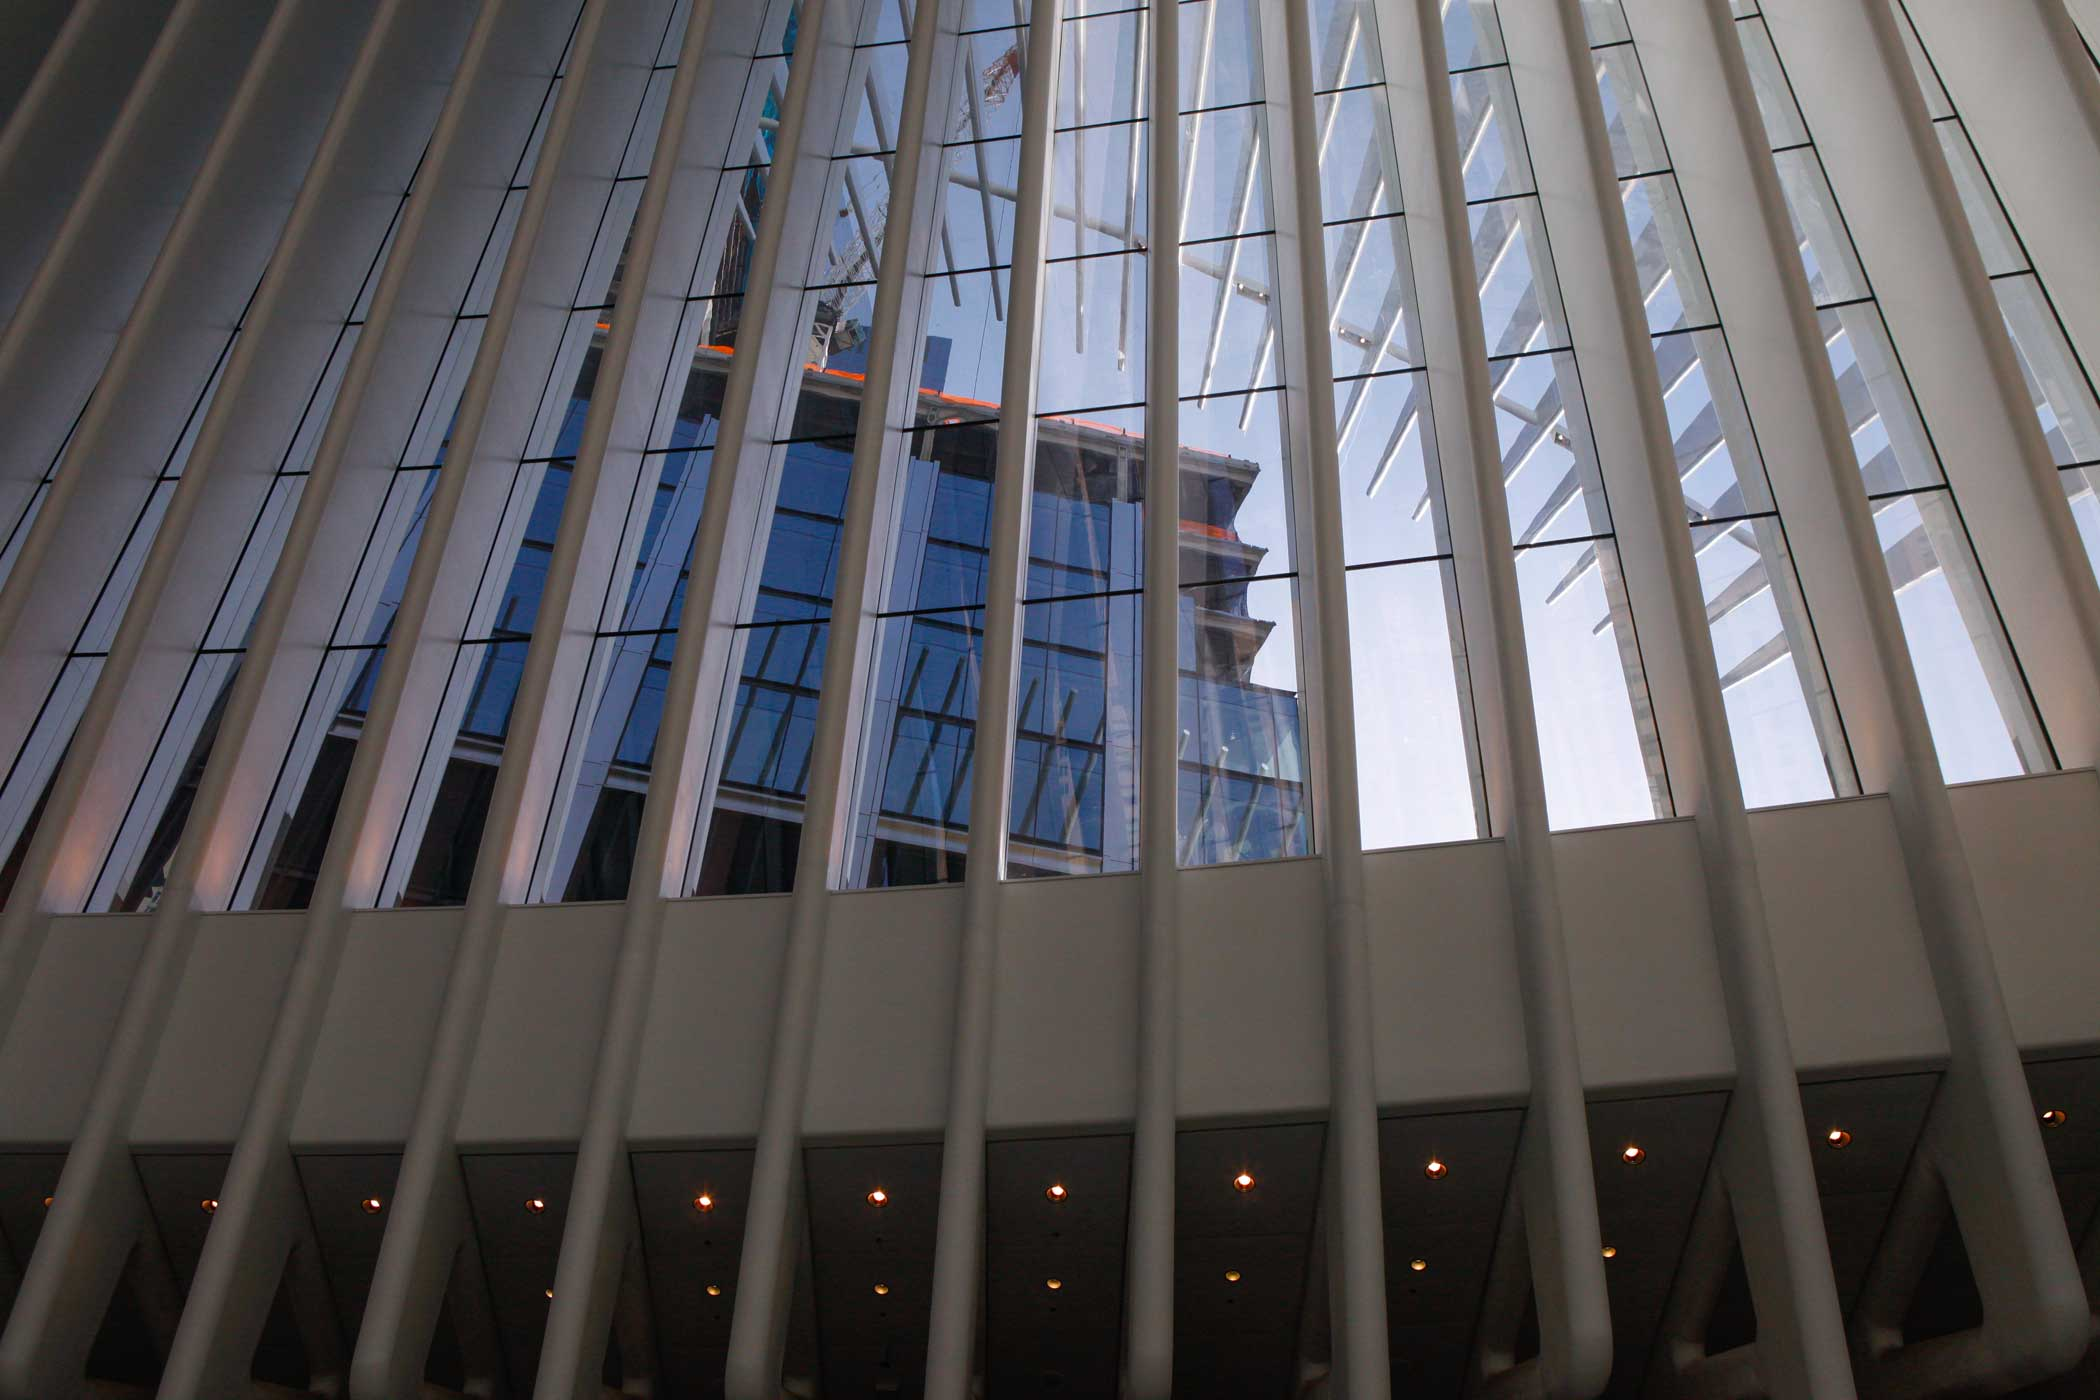 The World Trade Center 3  building seen from the Oculus.